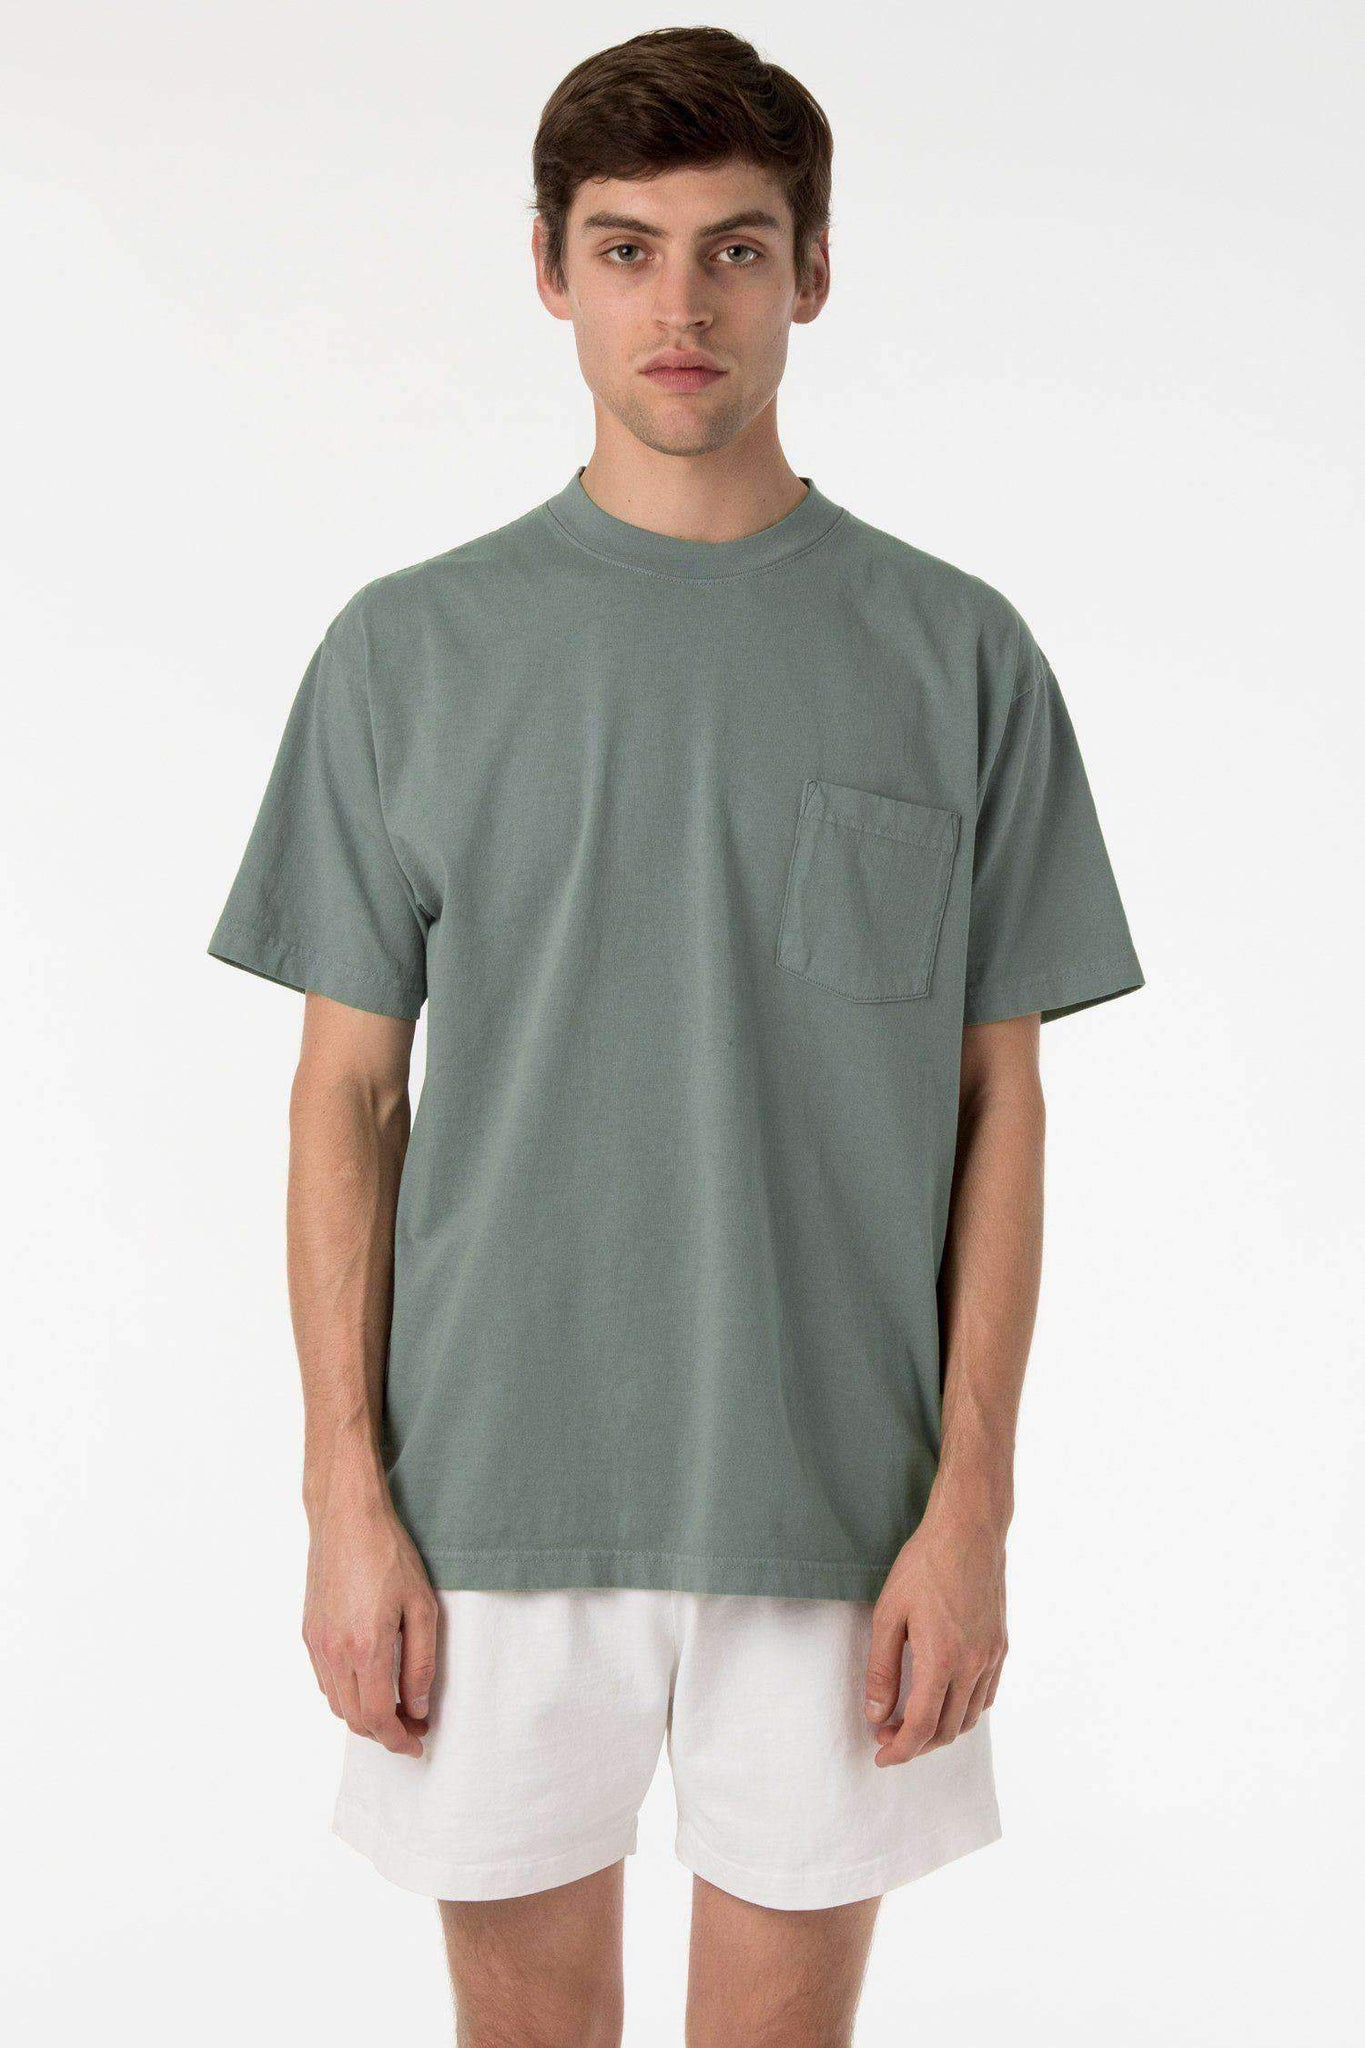 1809GD - Short Sleeve Garment Dye Pocket T-Shirt T-Shirt Los Angeles Apparel Atlantic Green XS